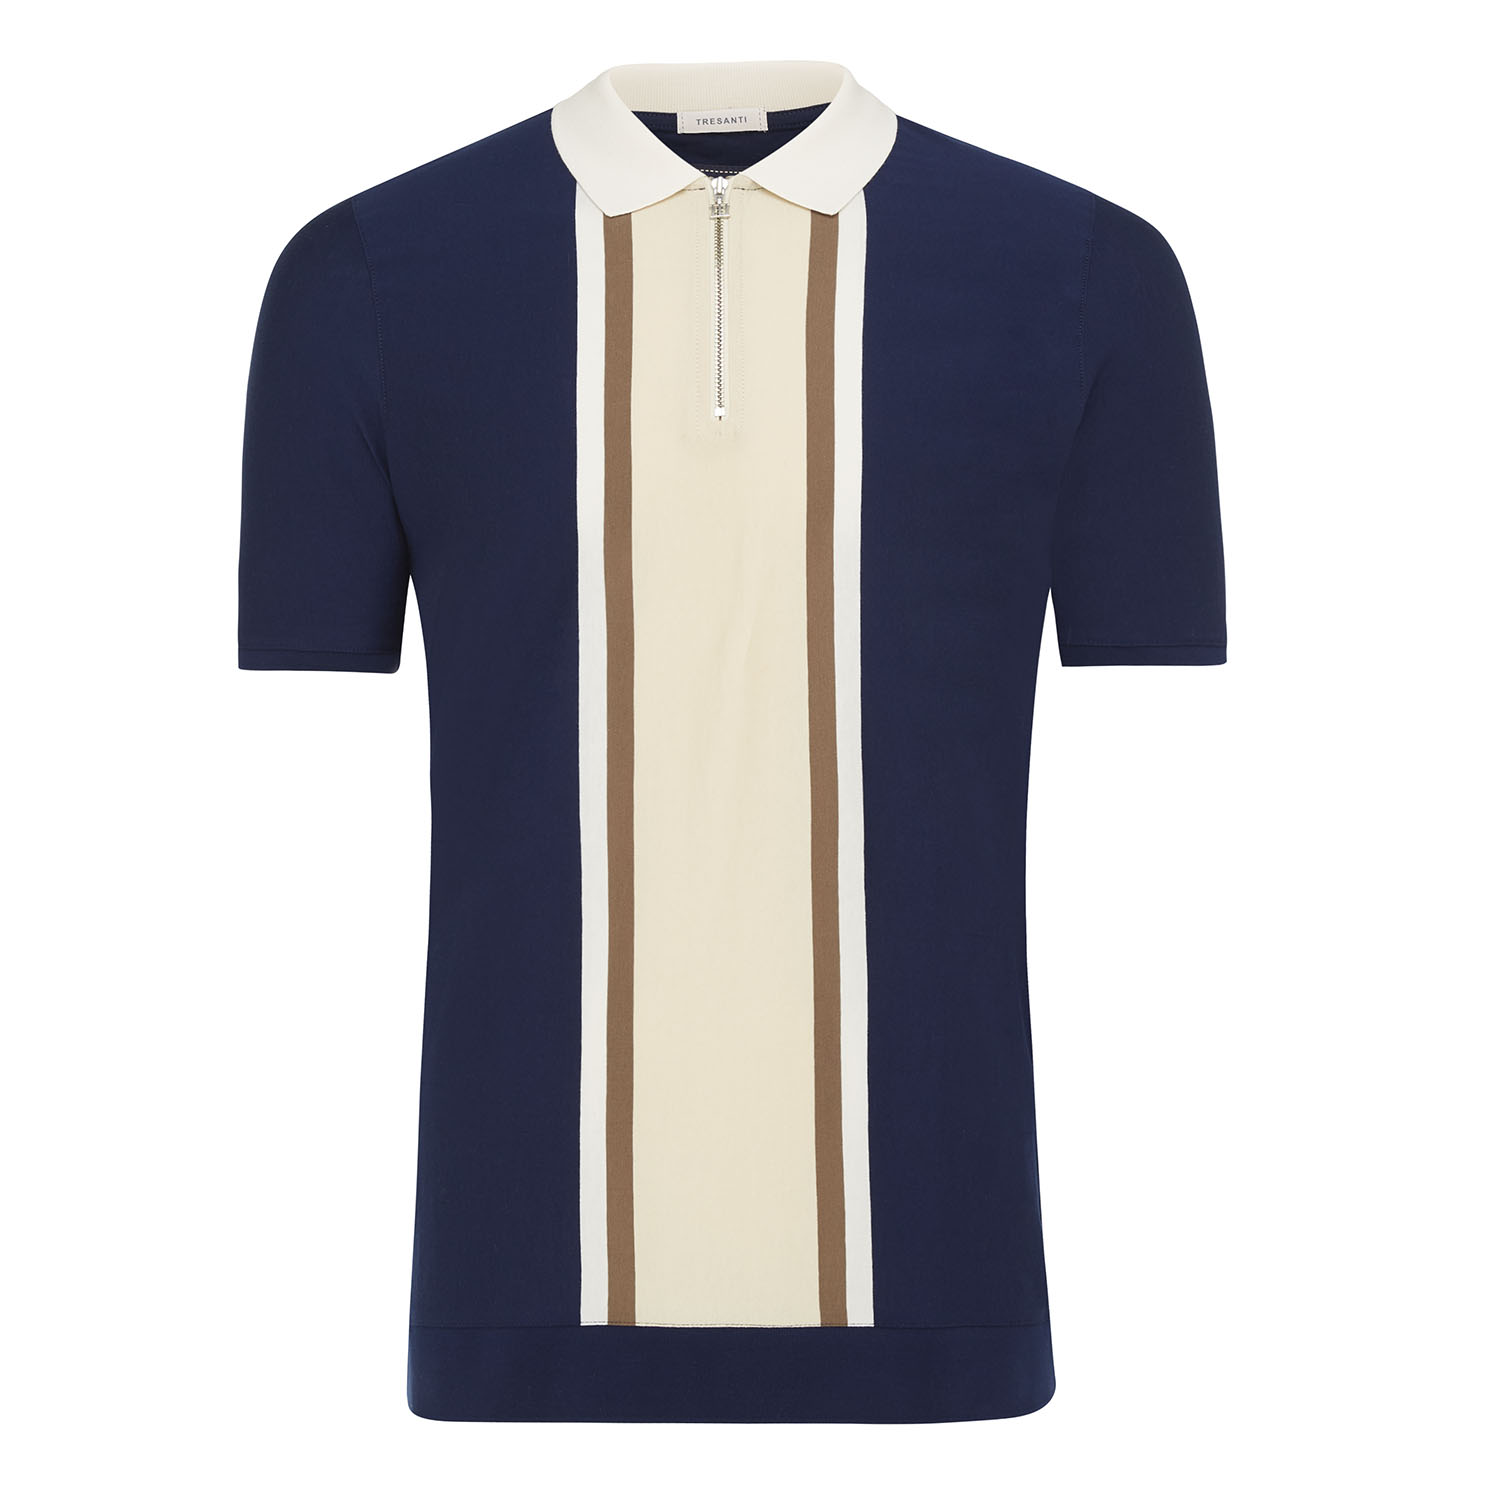 Marvin | Polo cotton mercerized with zipper navy